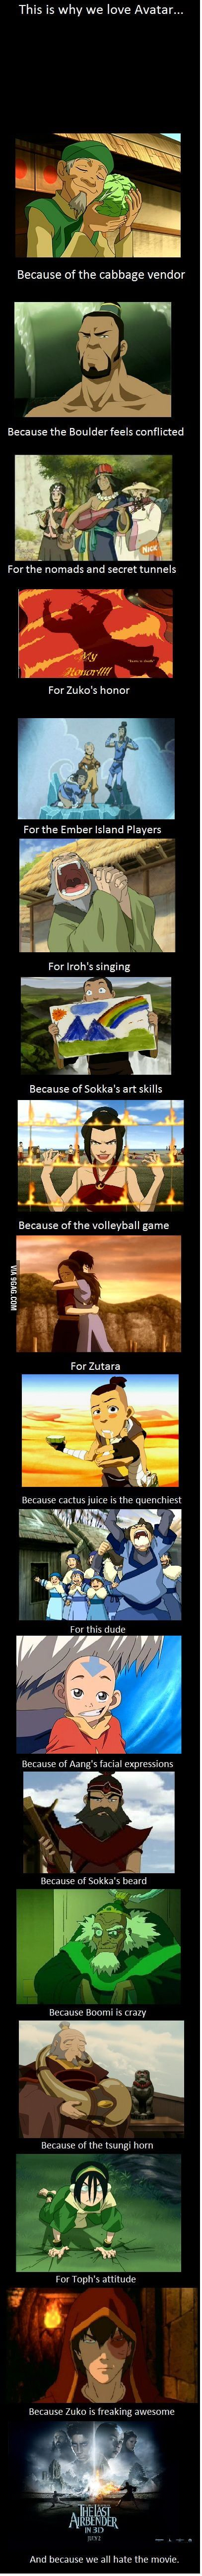 Avatar is the best